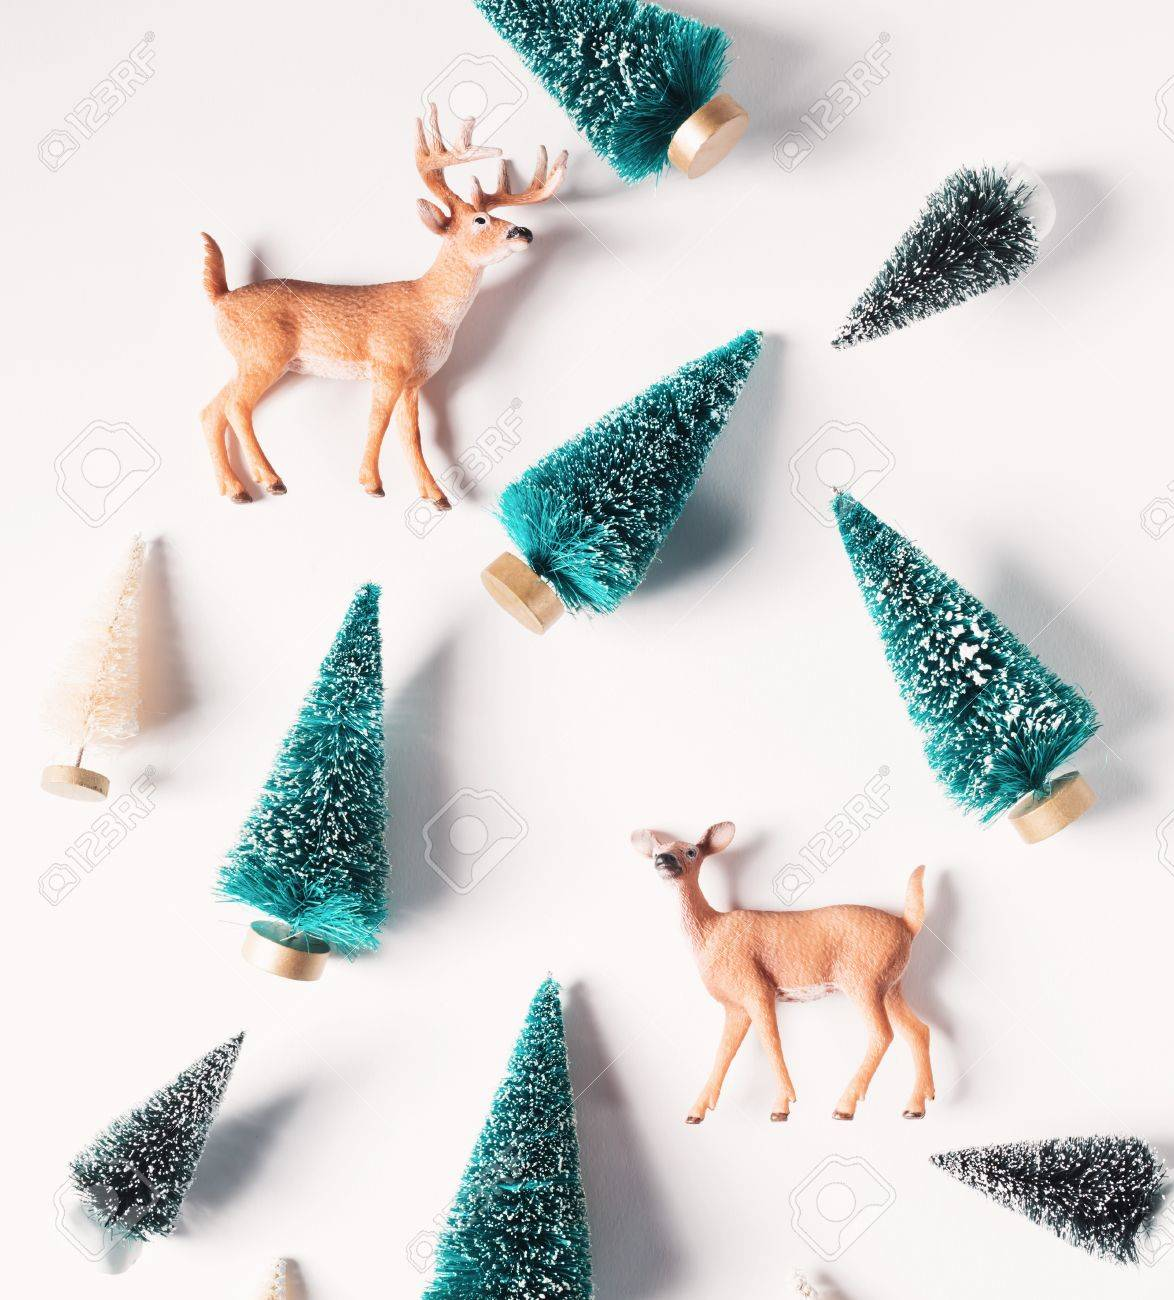 Christmas trees and deer from top view Standard-Bild - 64676630